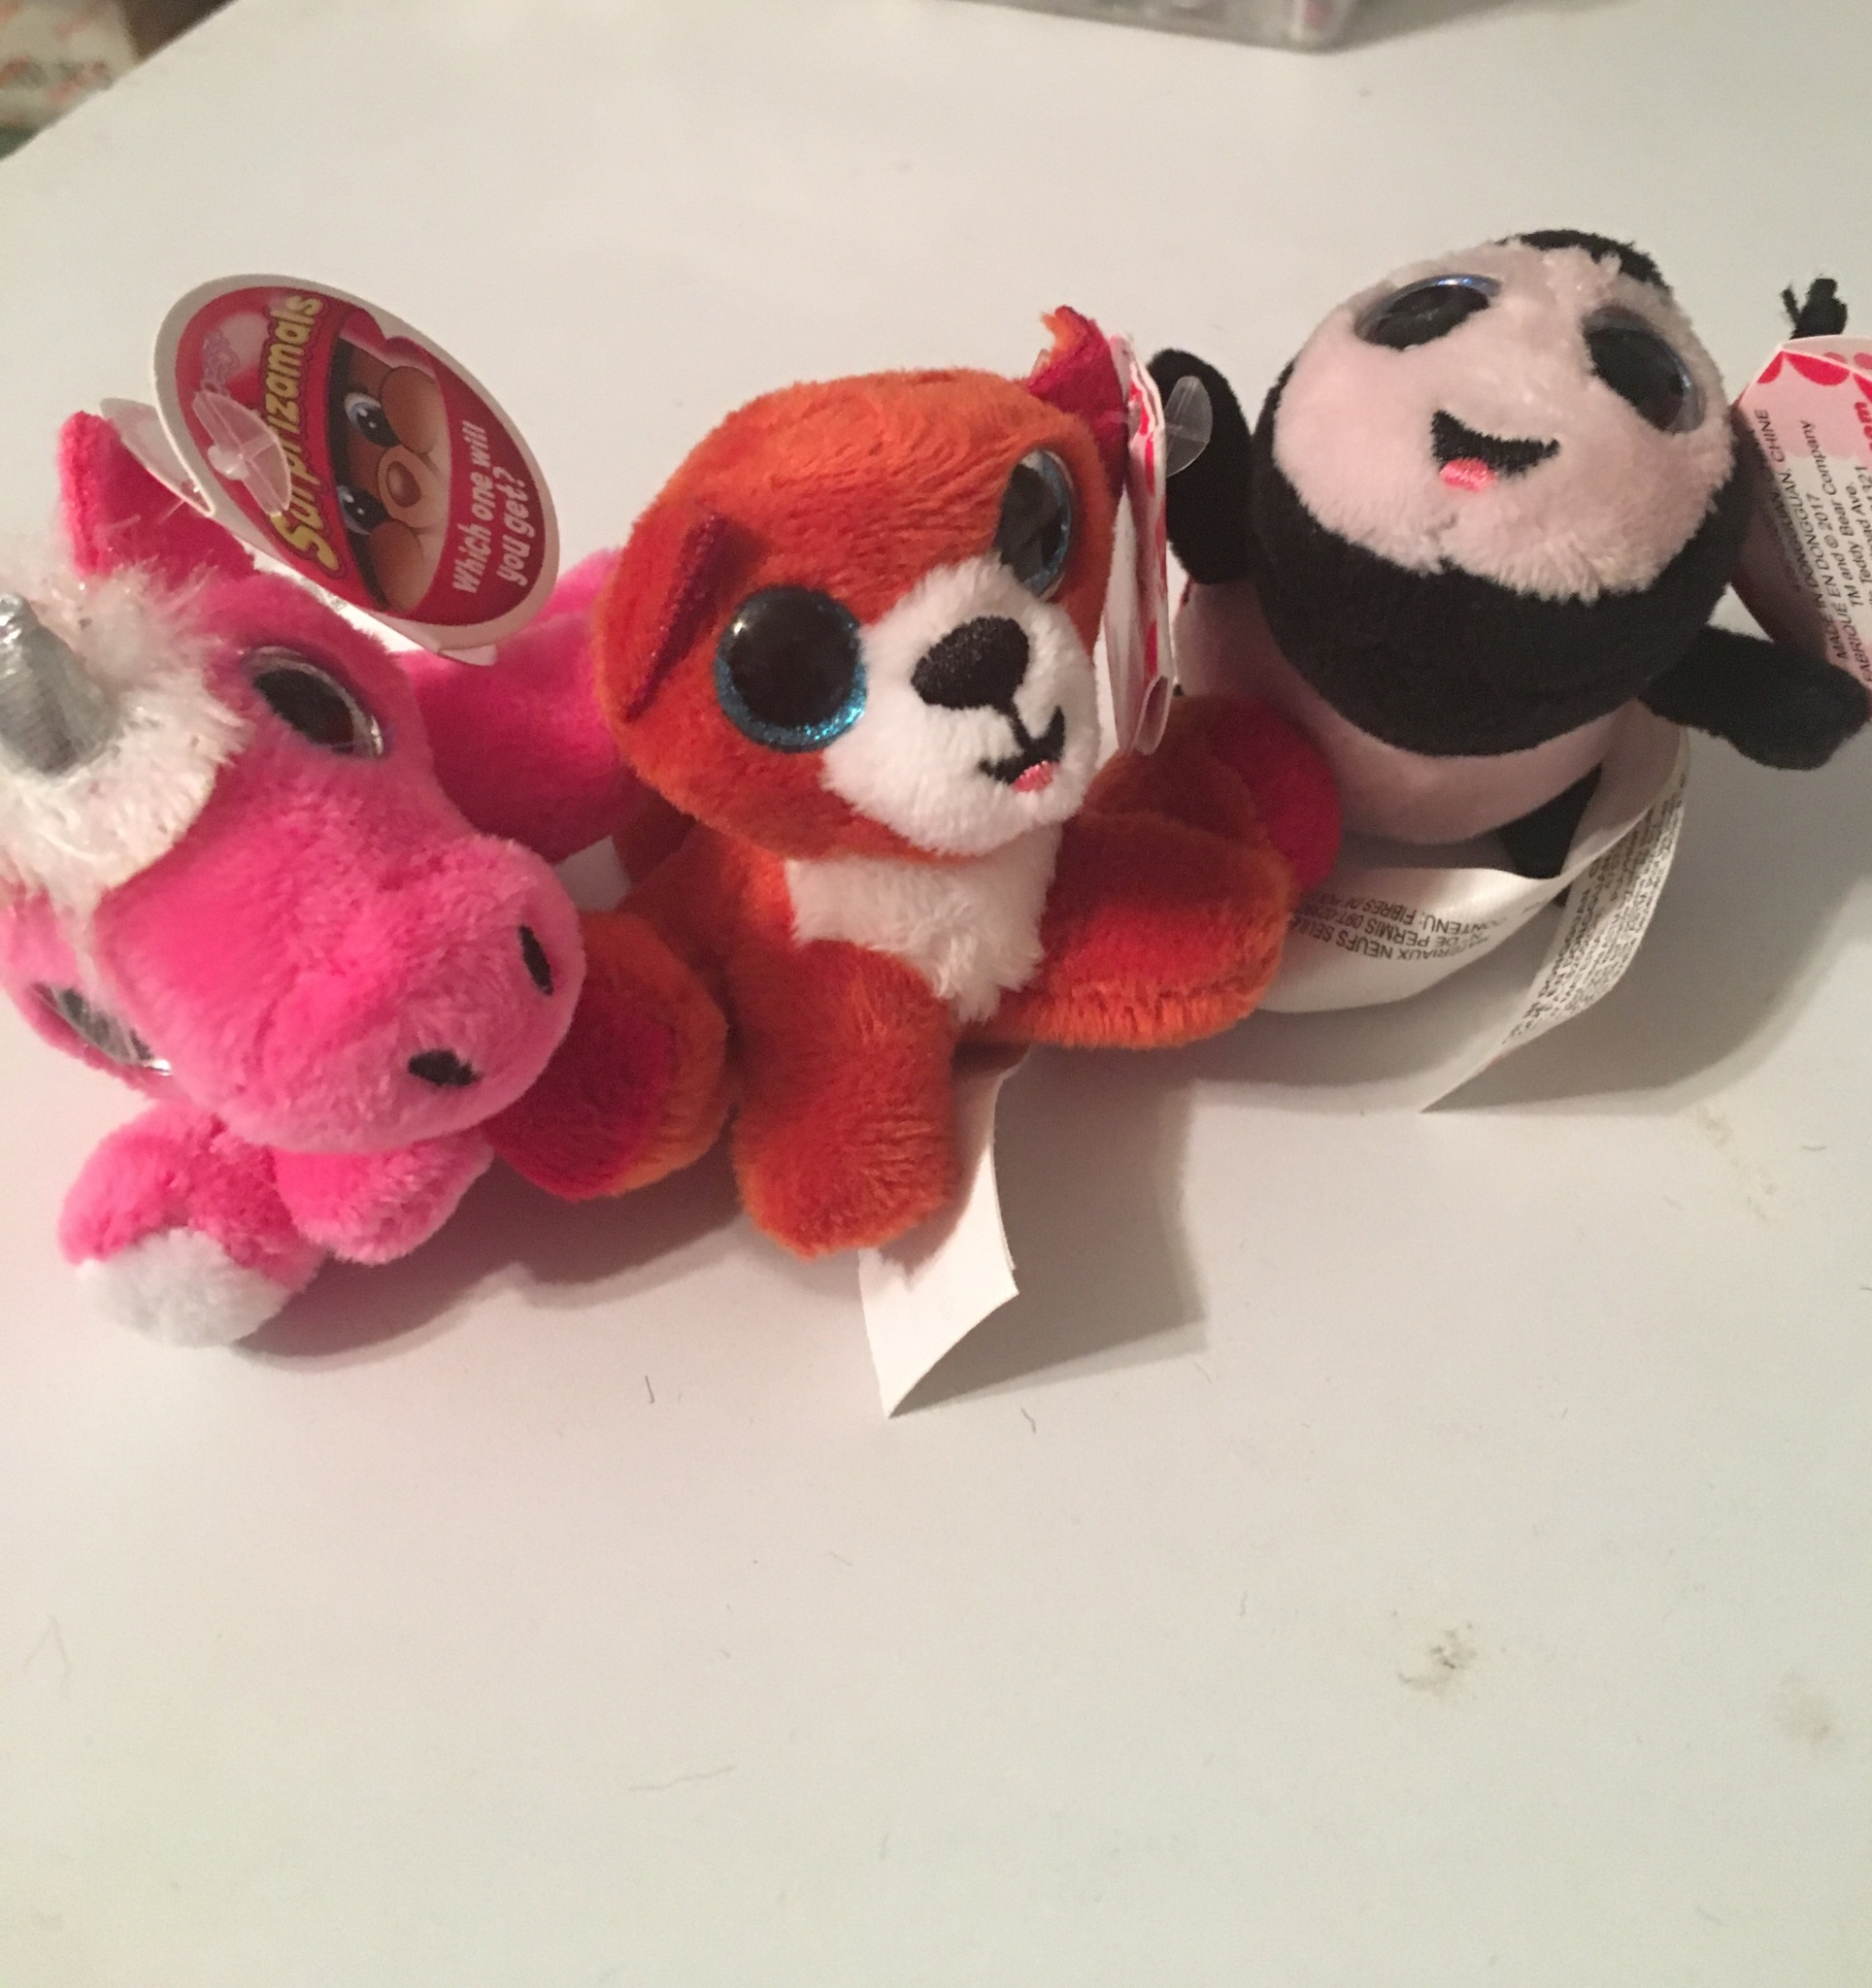 Toy review on plush toys inside Surprizamal eggs